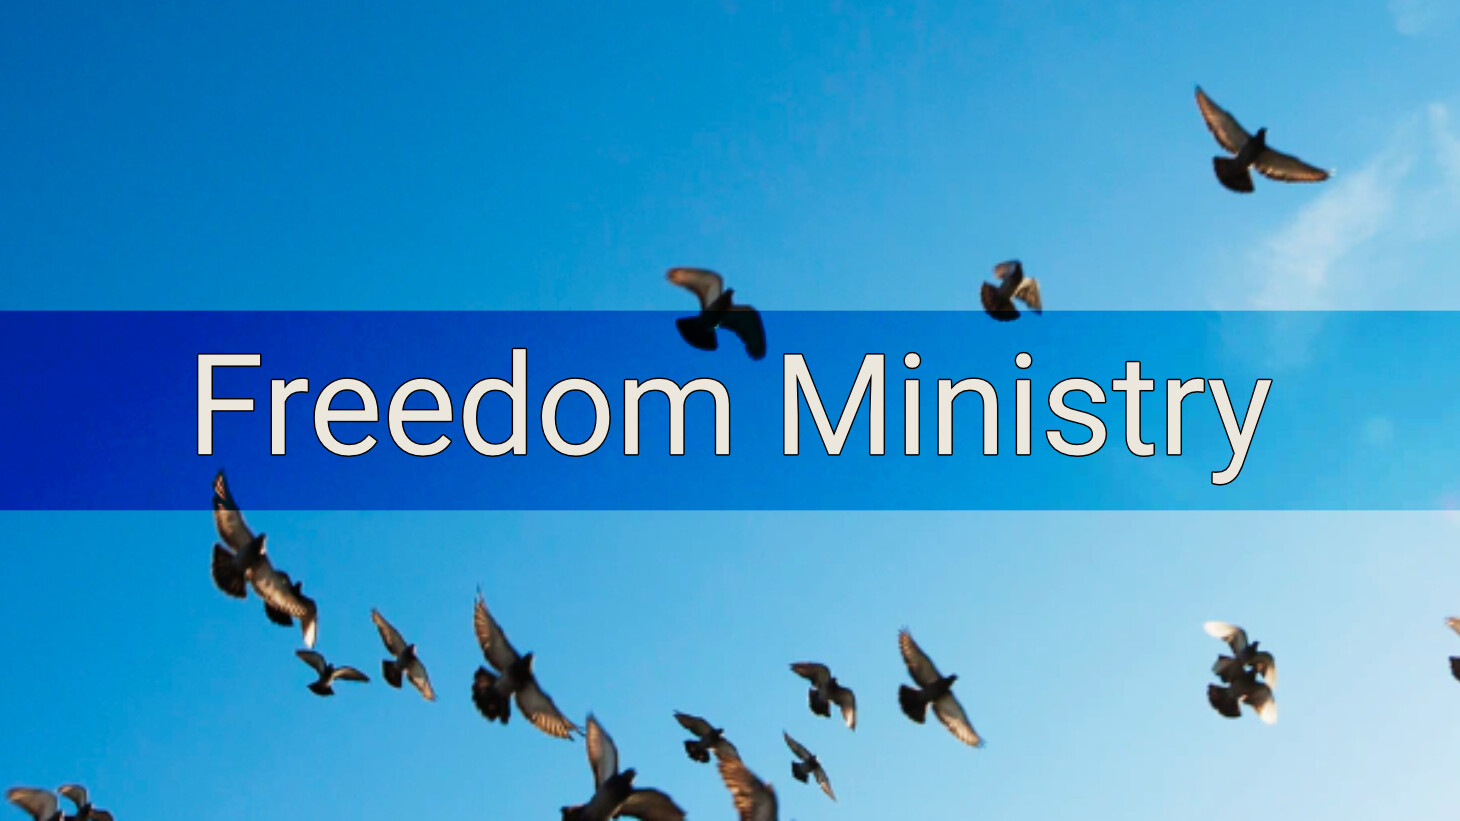 Freedom Ministry